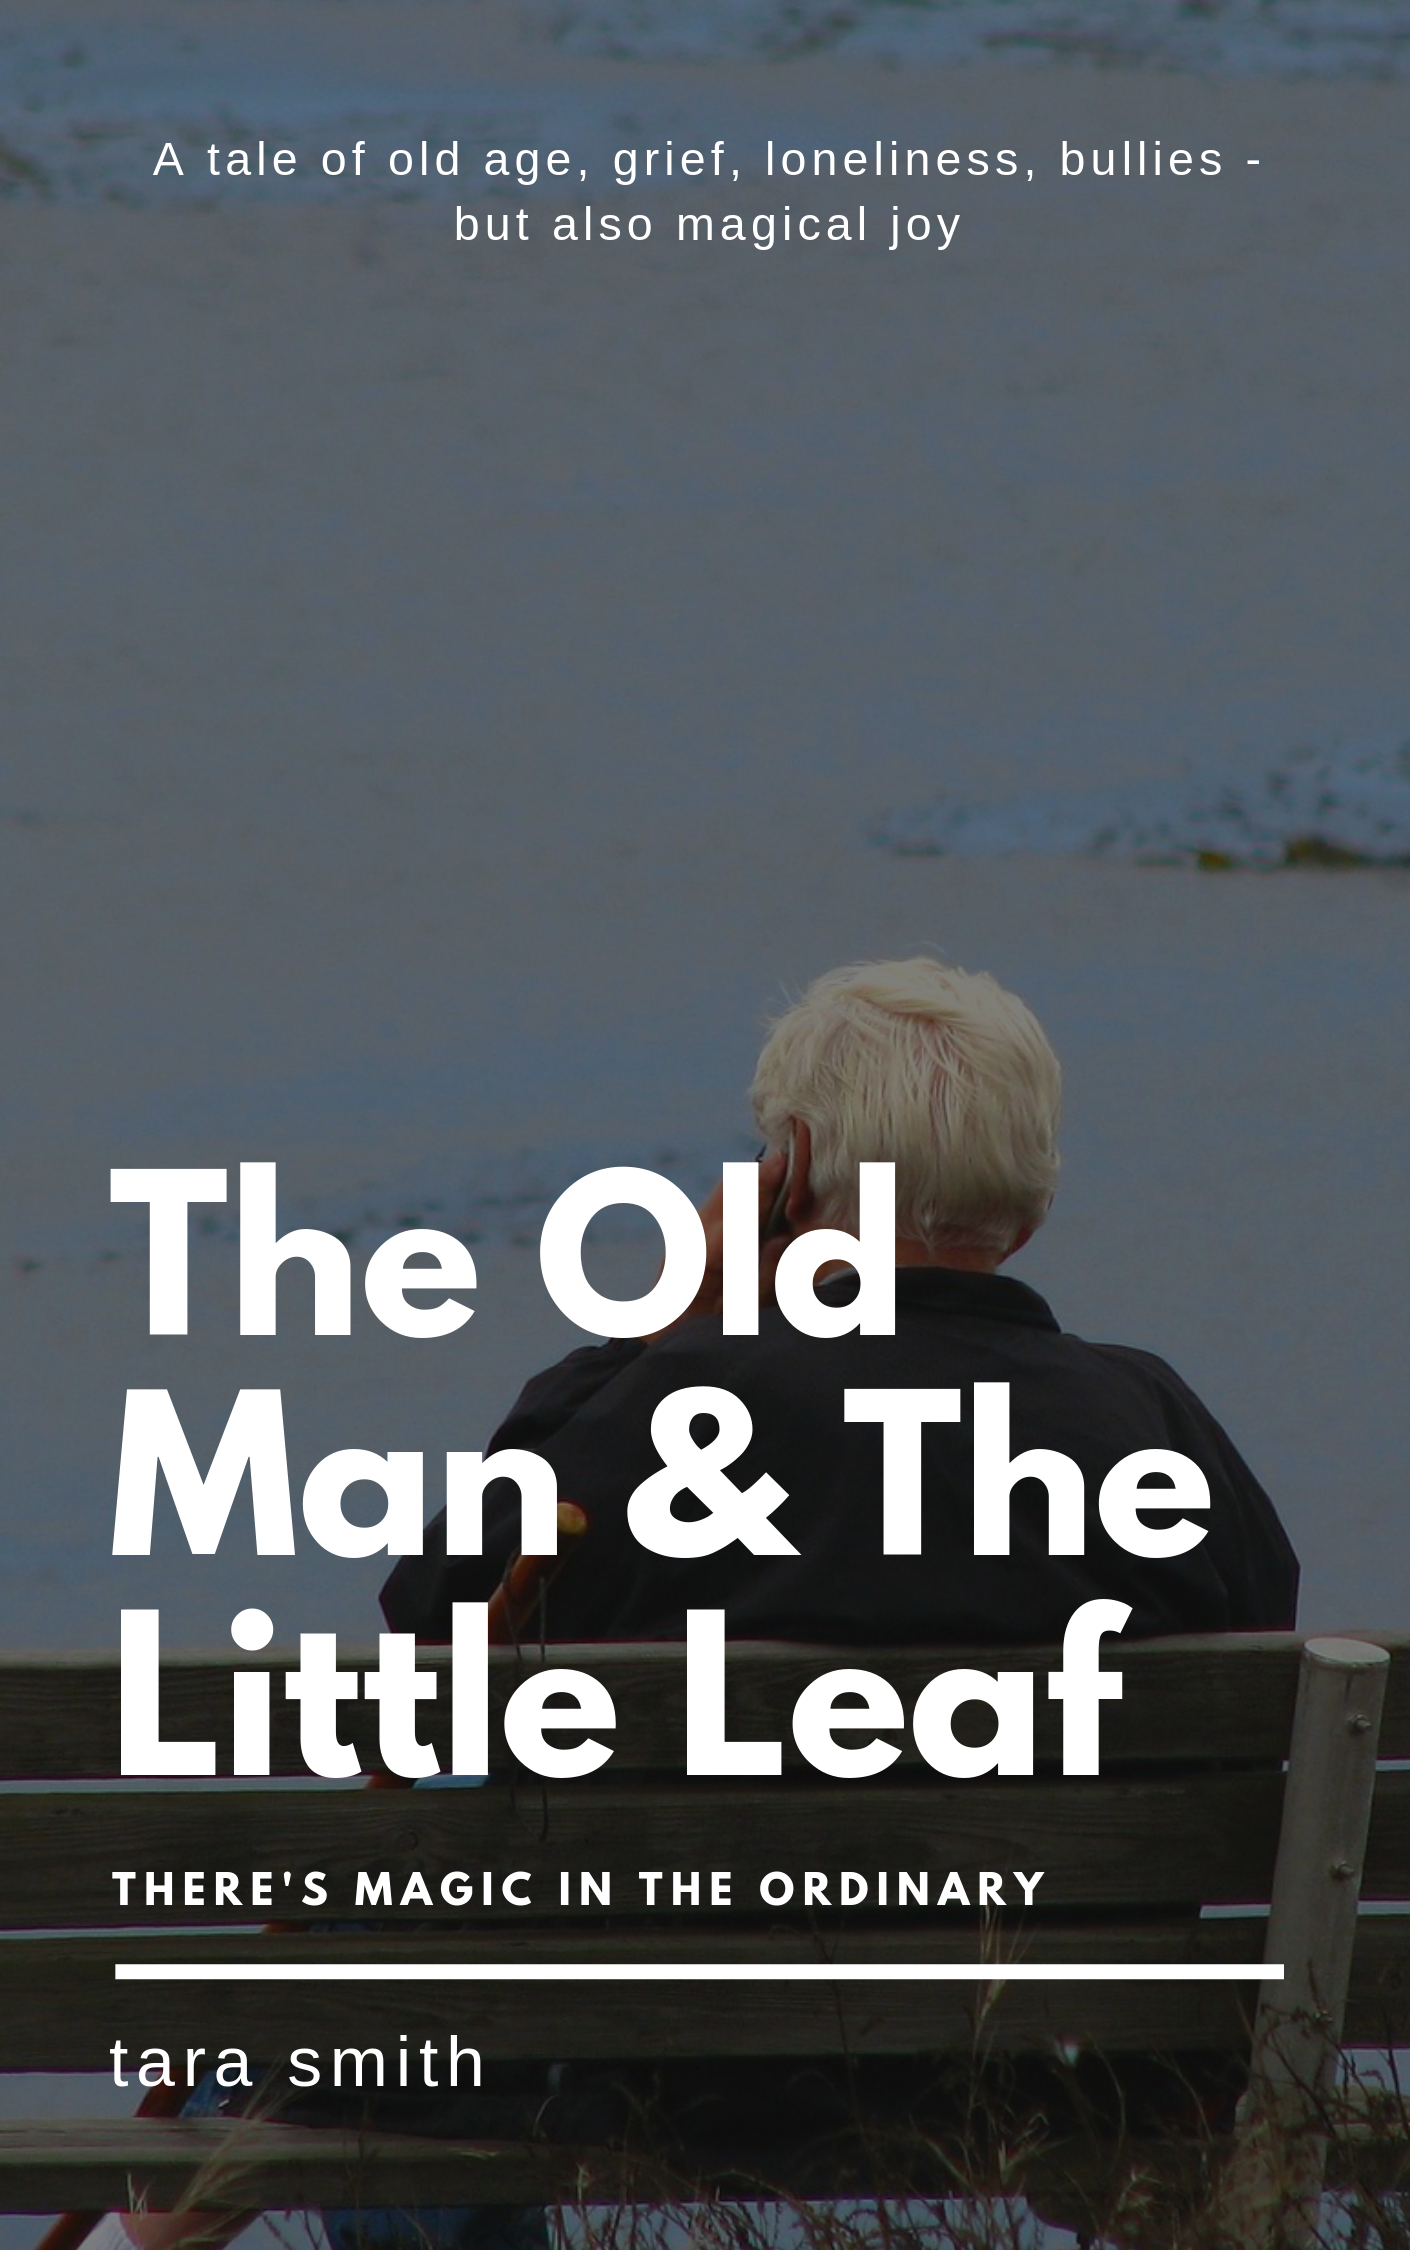 The Old Man And The Little Leaf—A Magical Realism & Fantasy Book by Tara Smith